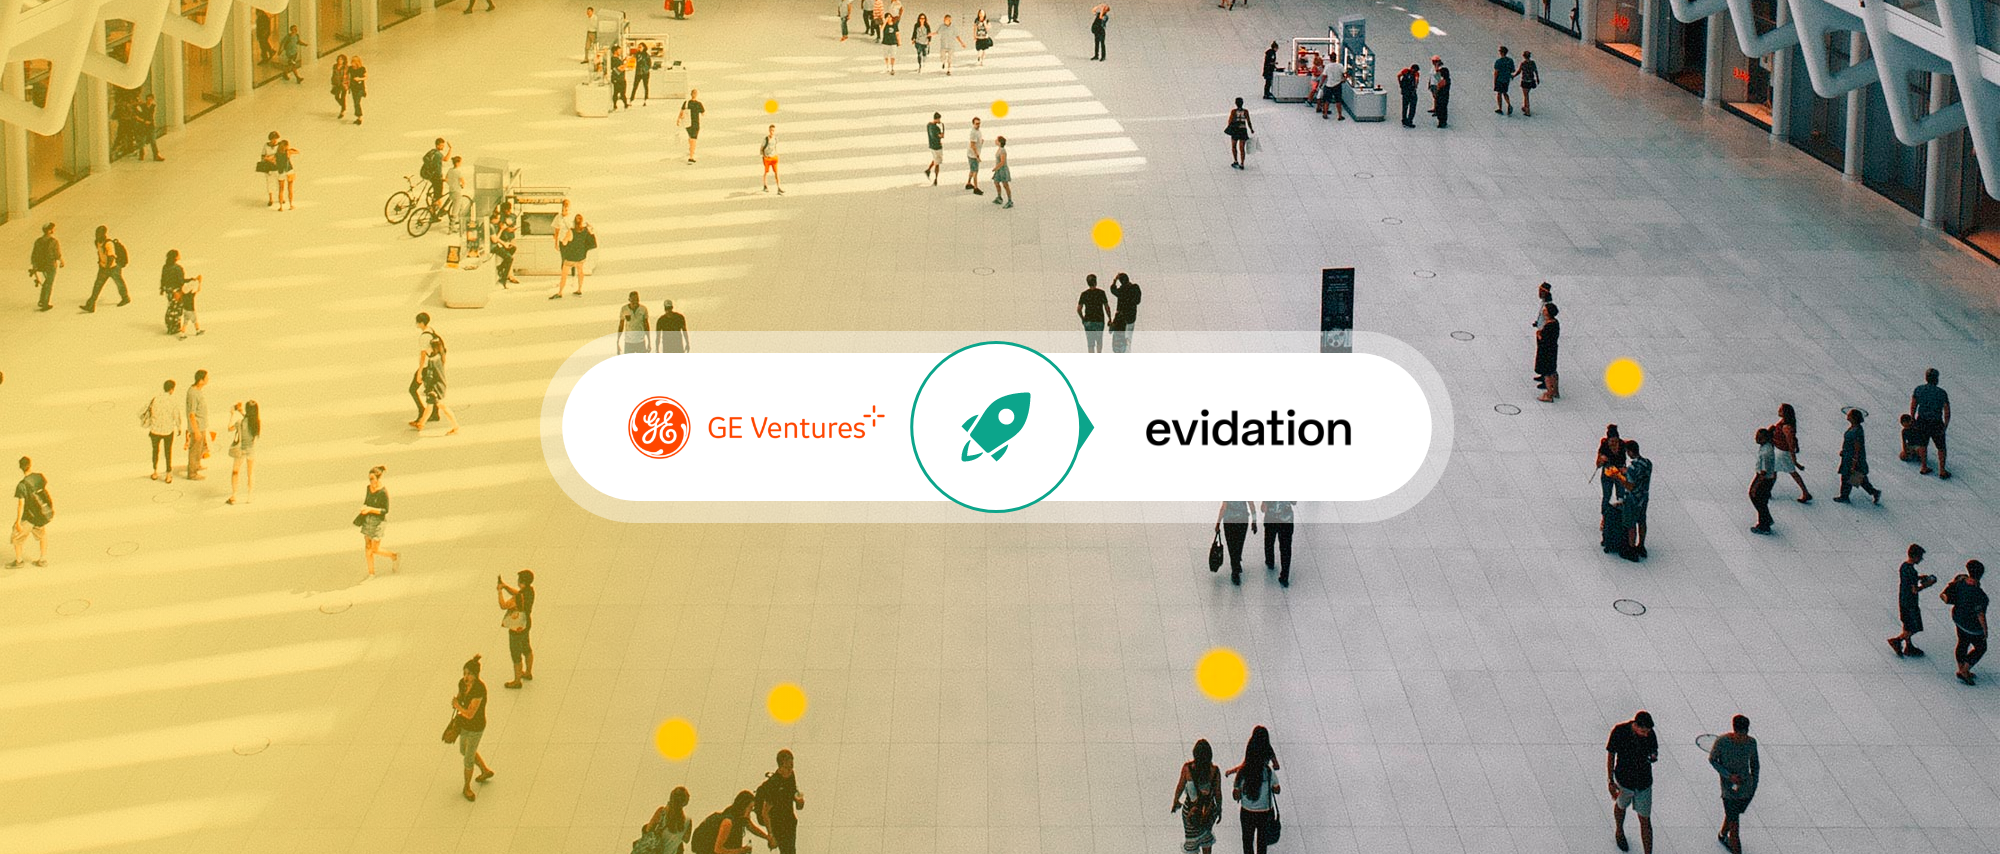 Evidation Health: A New Way of Validating Healthcare Outcomes